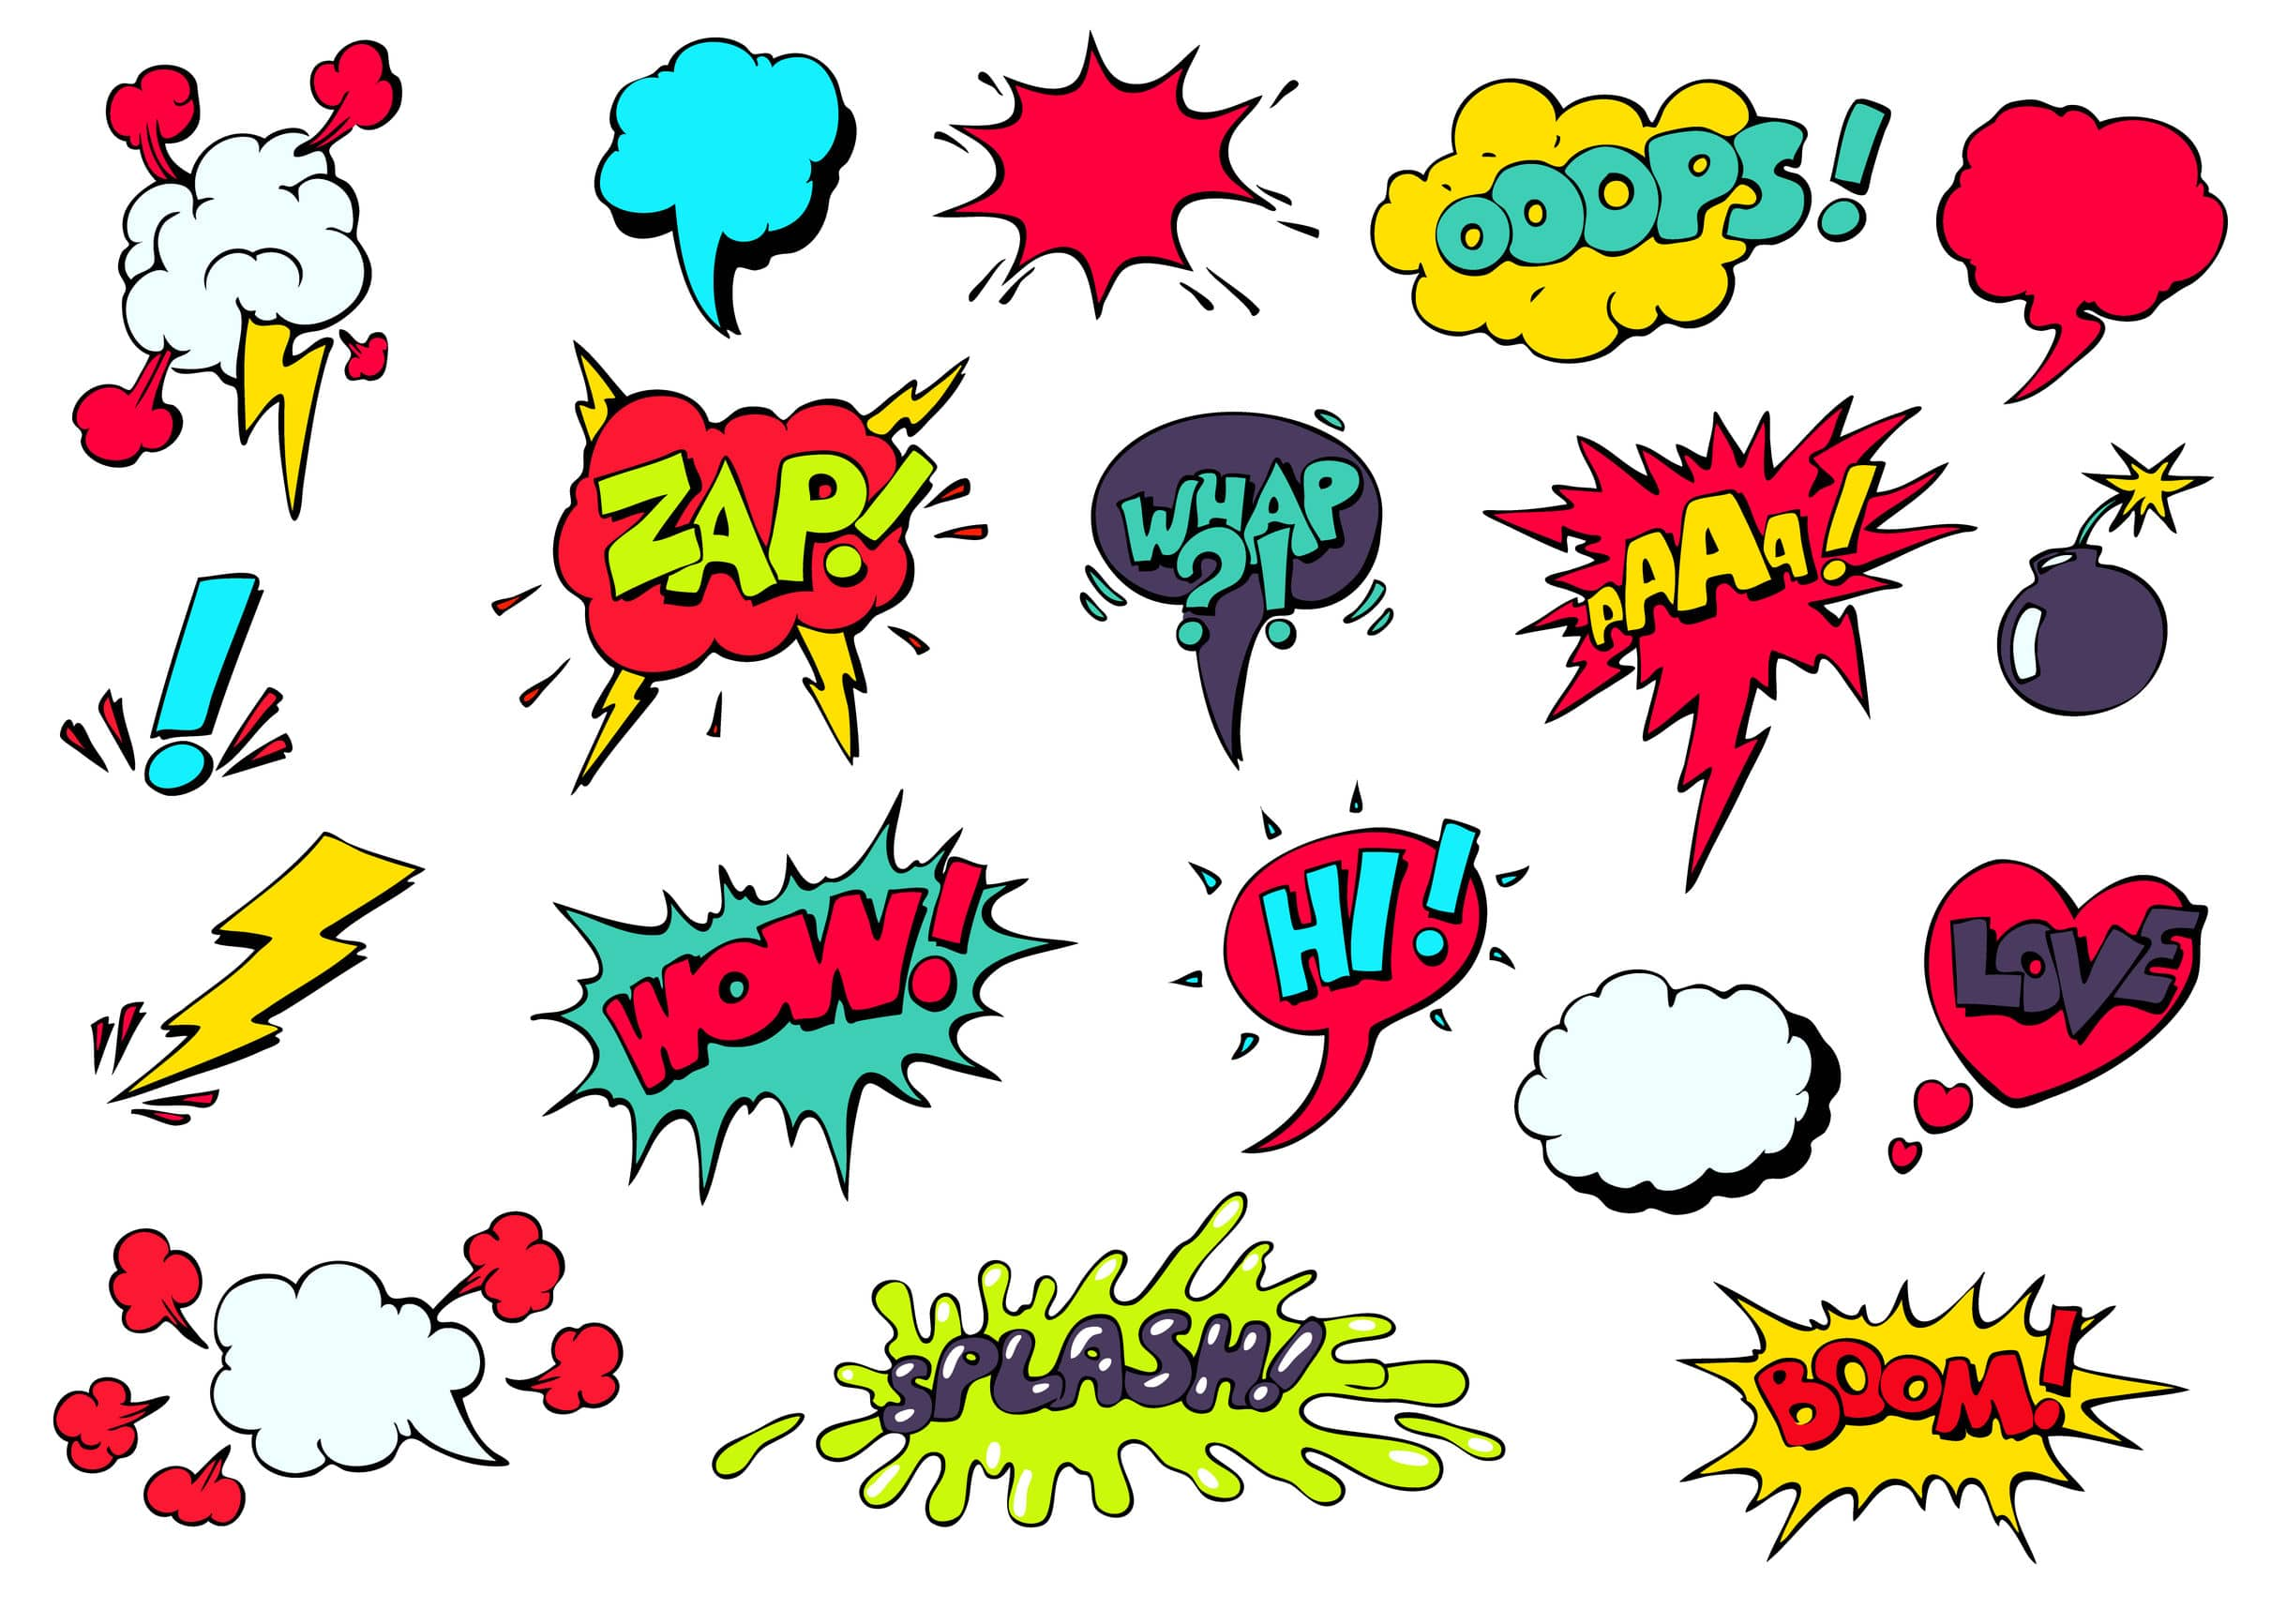 comic speech bubbles for different emotions and sound effects